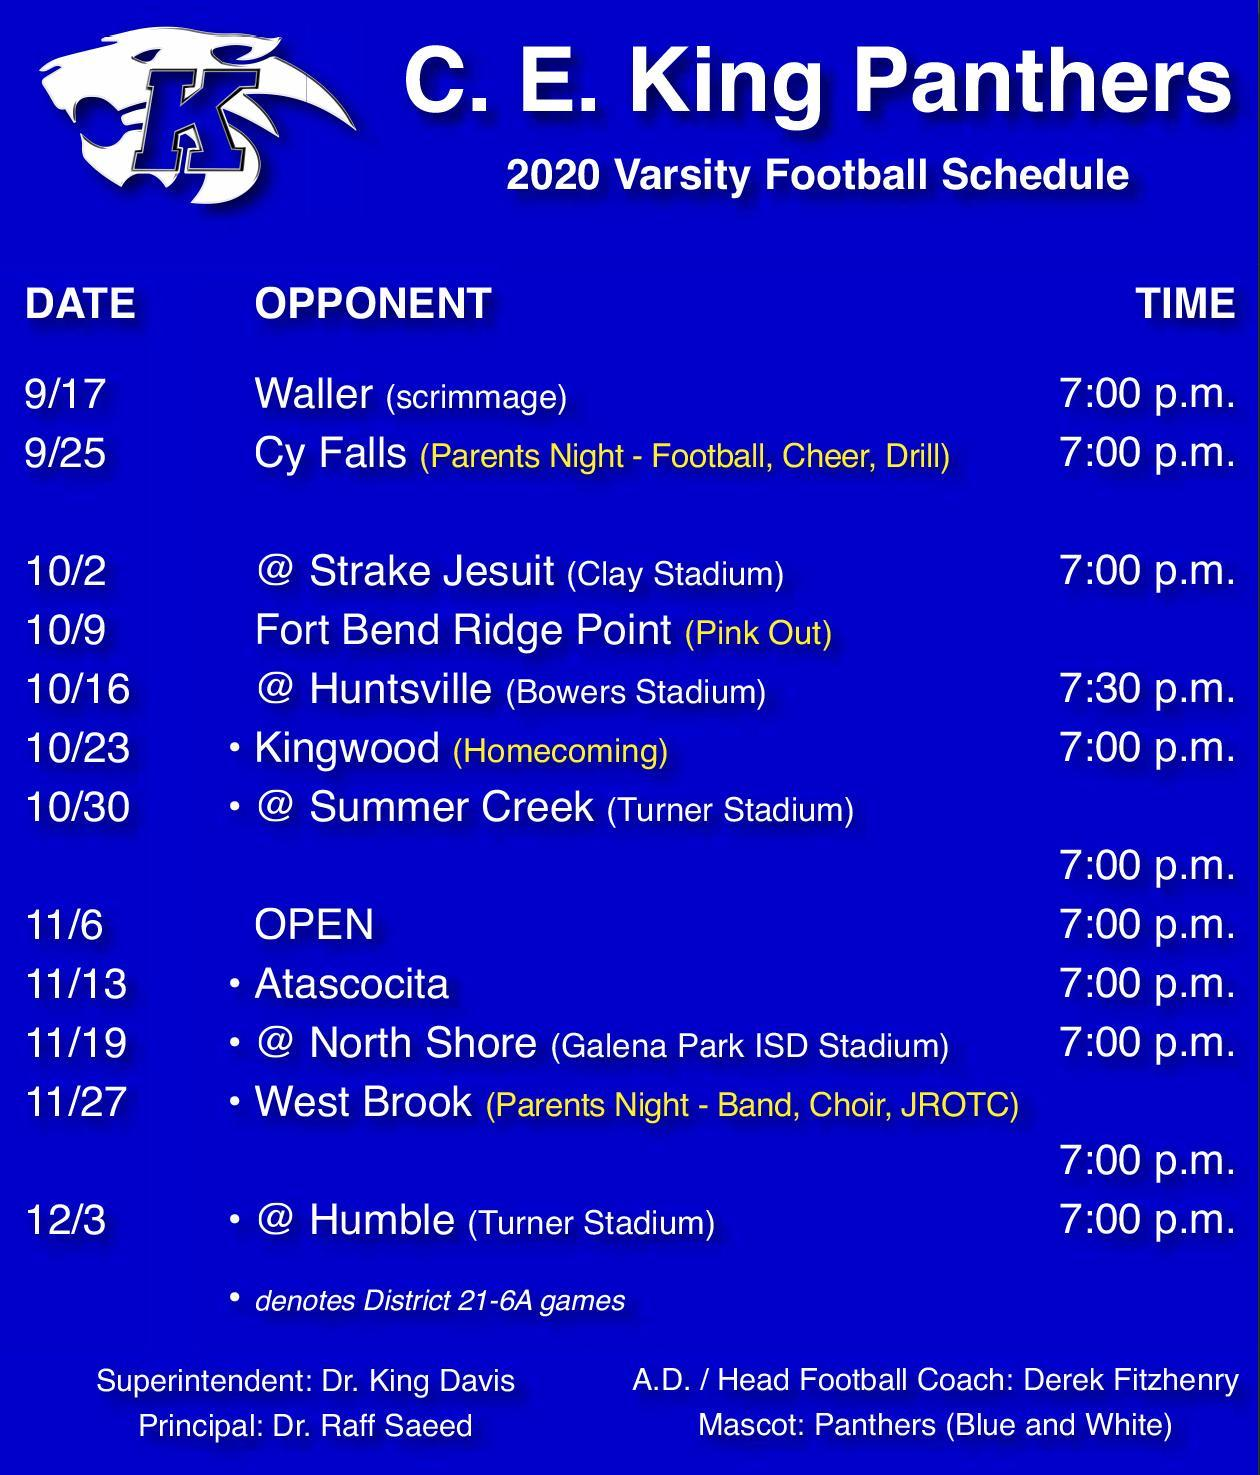 khs_2020_varsity_football_schedule